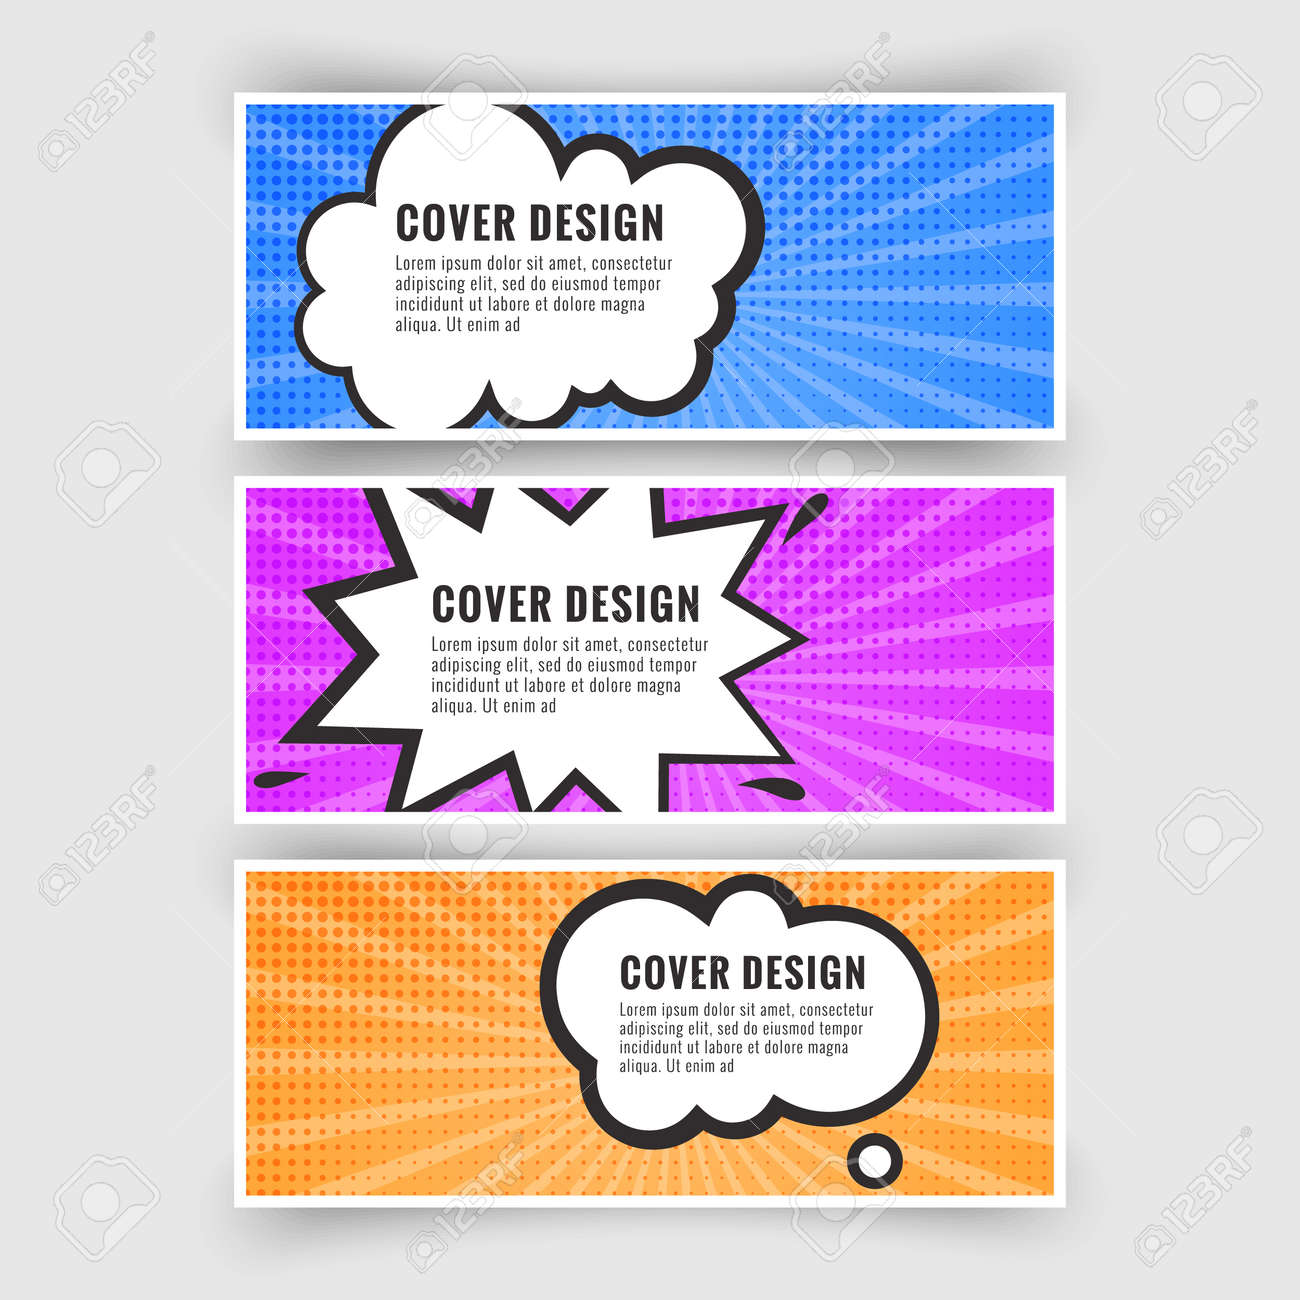 Set of banners in the style of pop art or comics, card collection, Vector illustration - 171608031